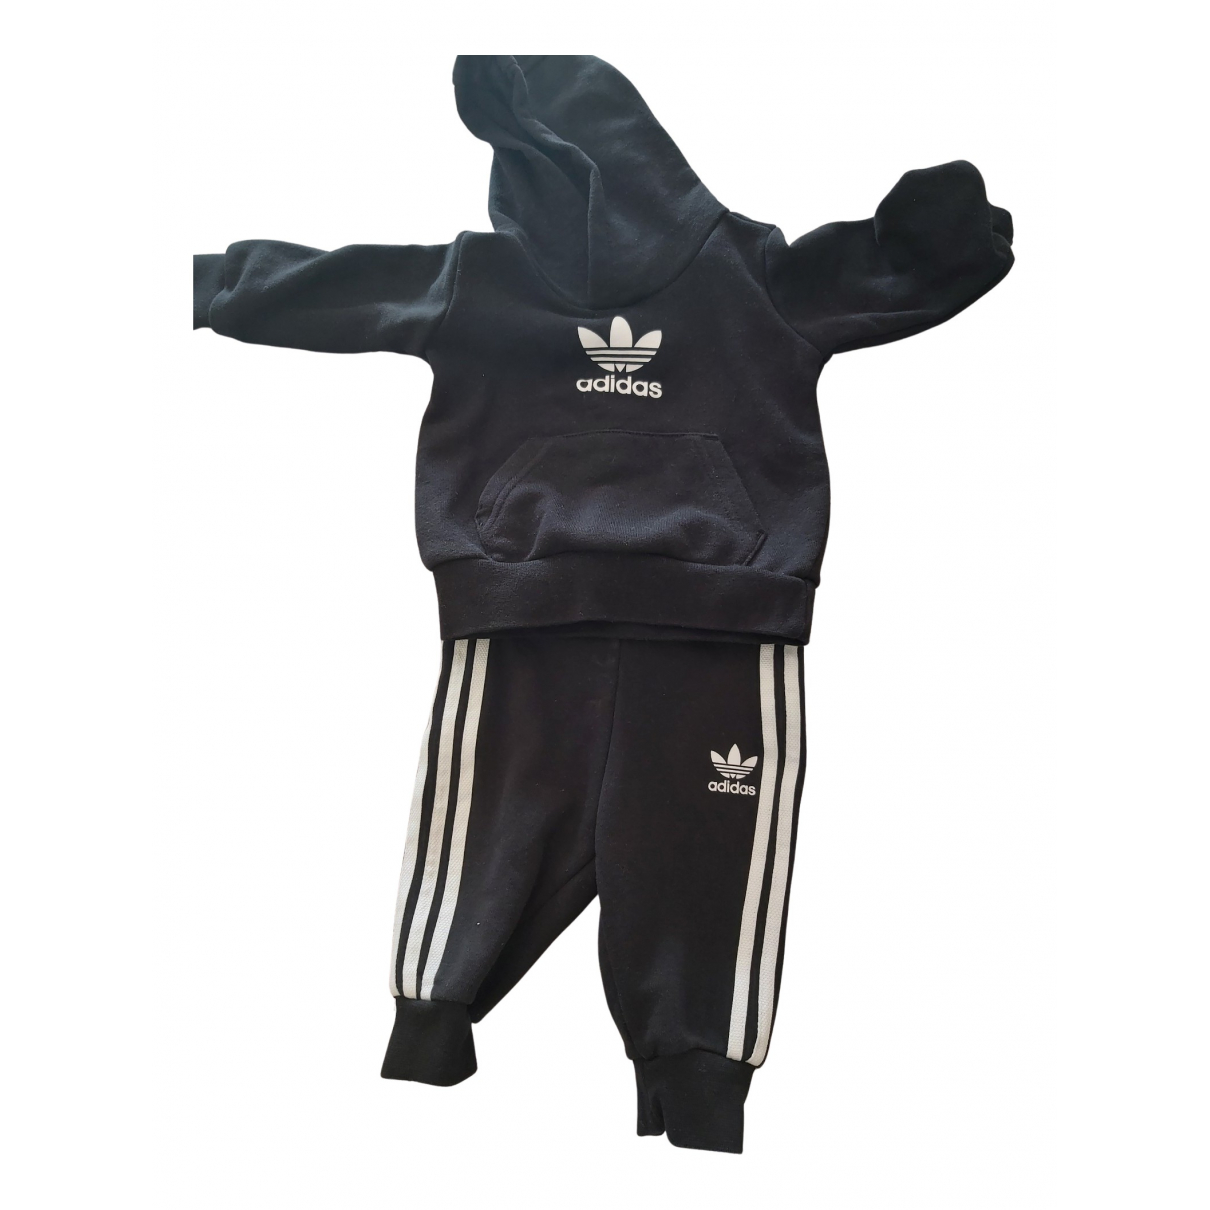 Adidas N Black Cotton Outfits for Kids 6 months - up to 67cm FR